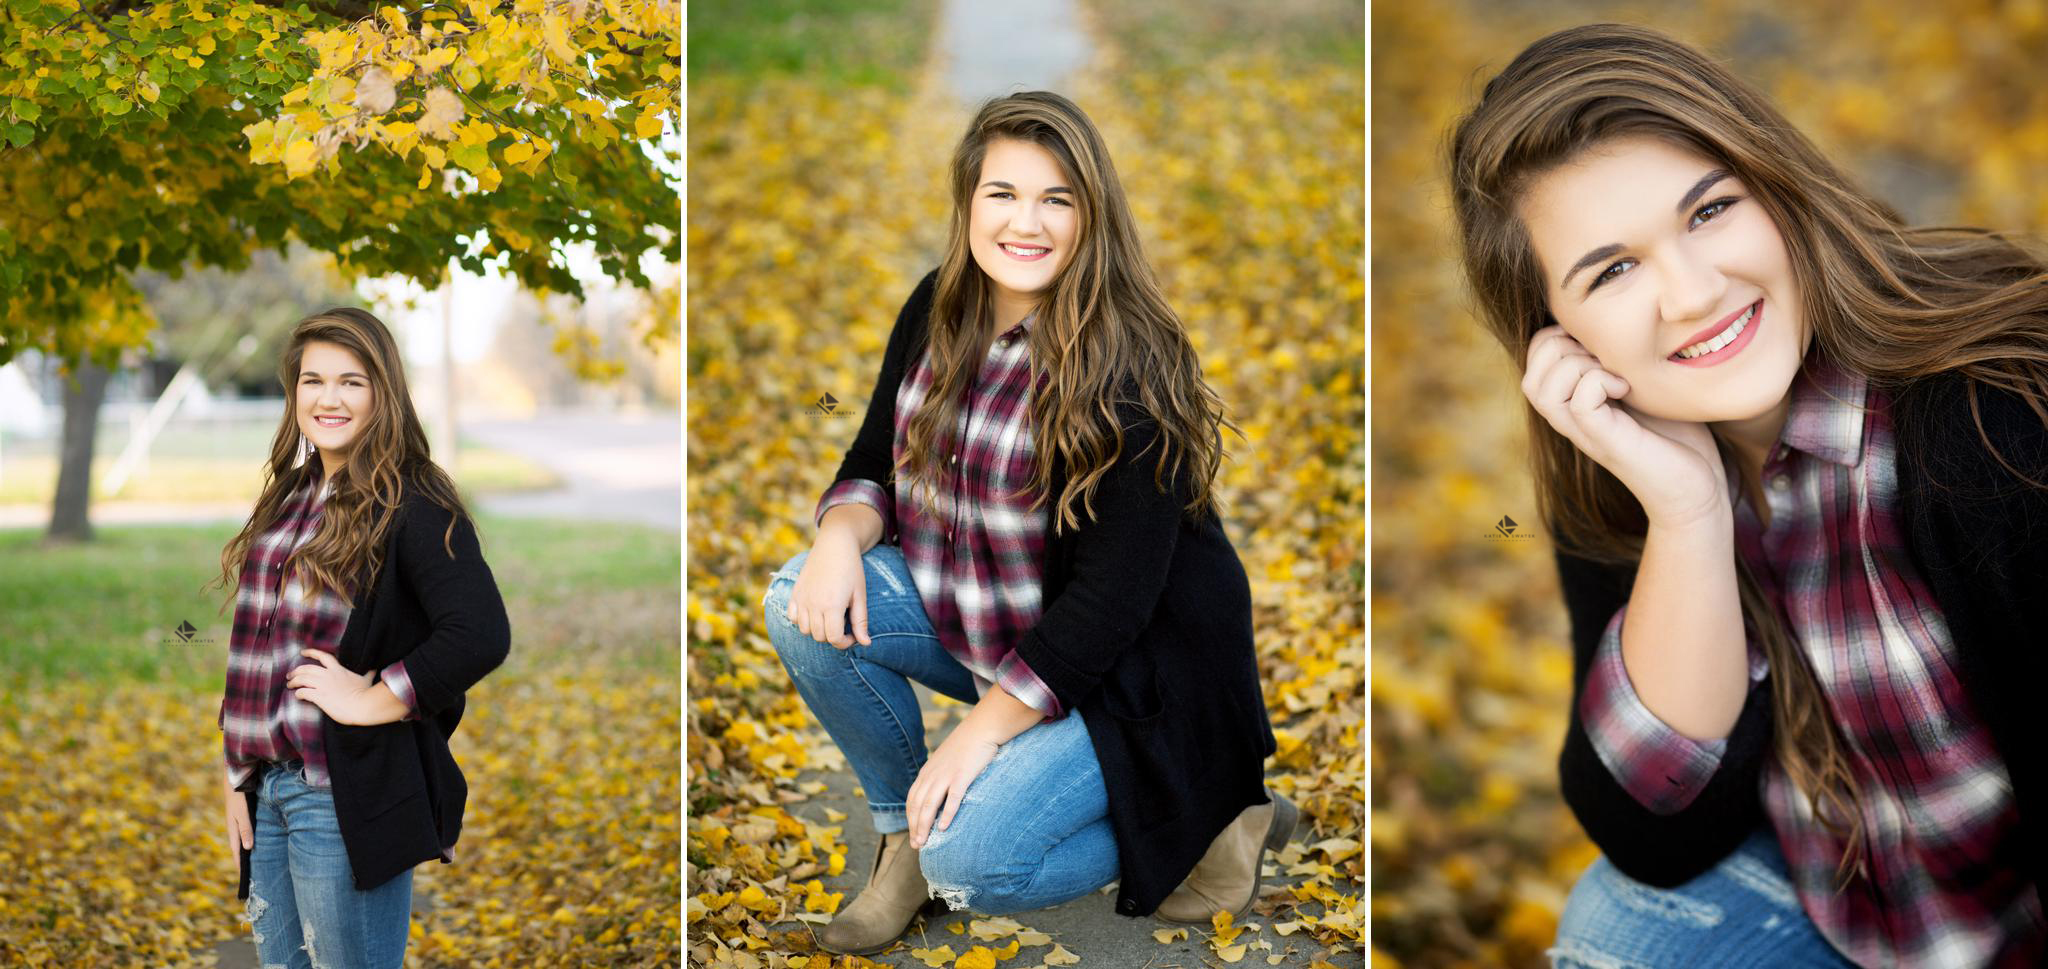 brunette senior girl in a maroon plaid shirt with a black cardigan posing for senior pictures by a yellow leafed tree in the fall